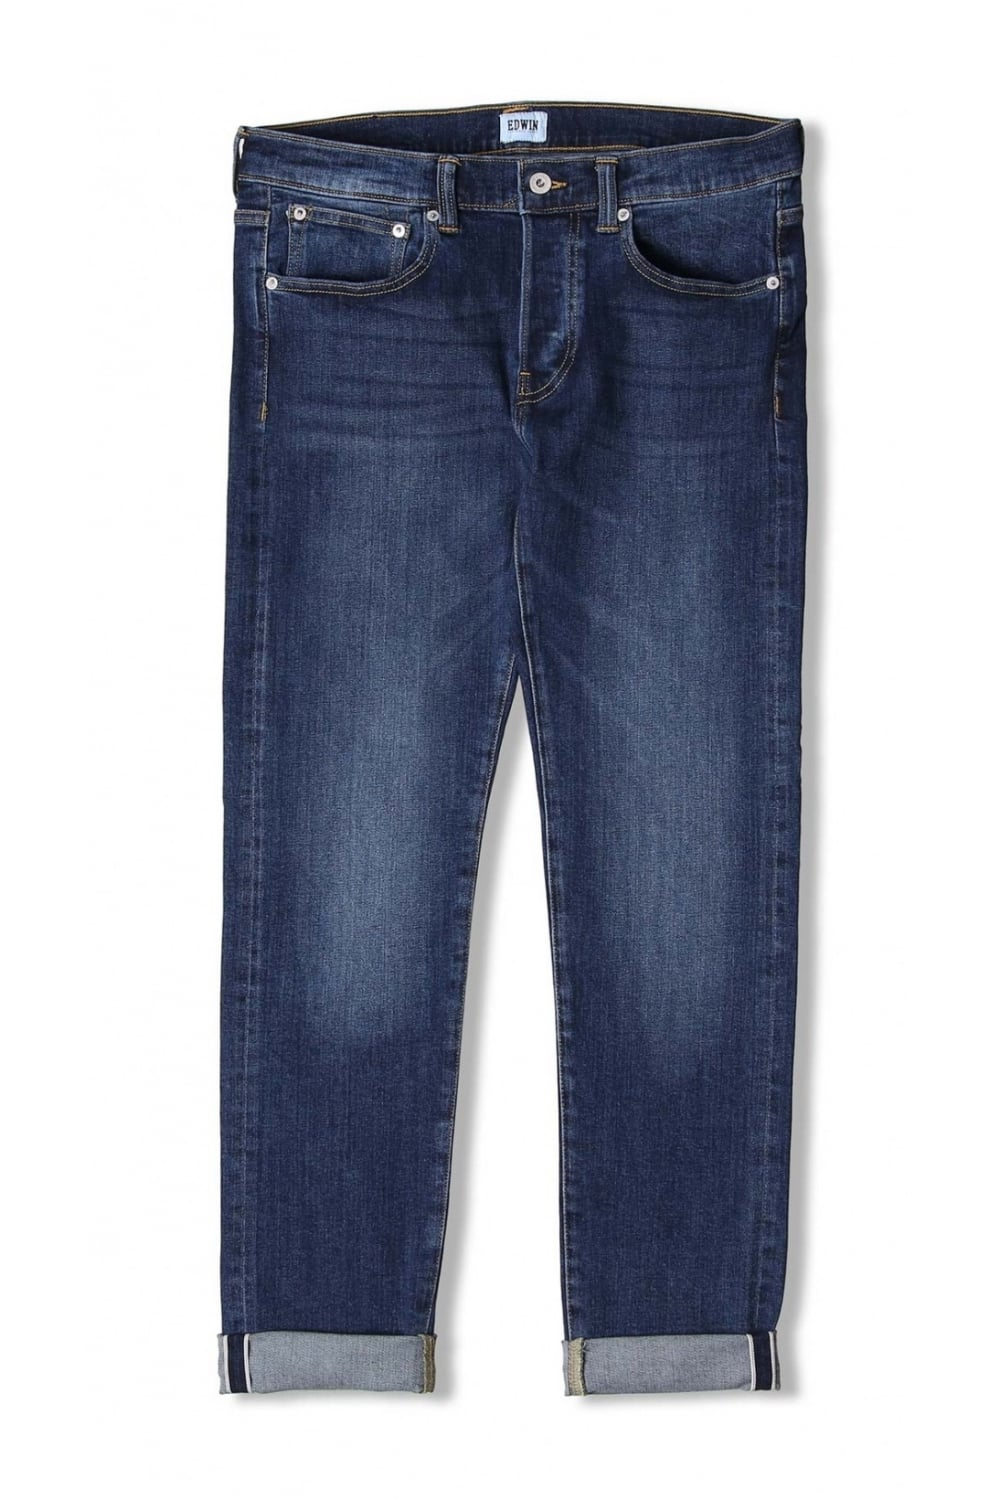 Edwin ED 80 Slim Tapered Red Listed Selvage Jeans (Blast Wash)